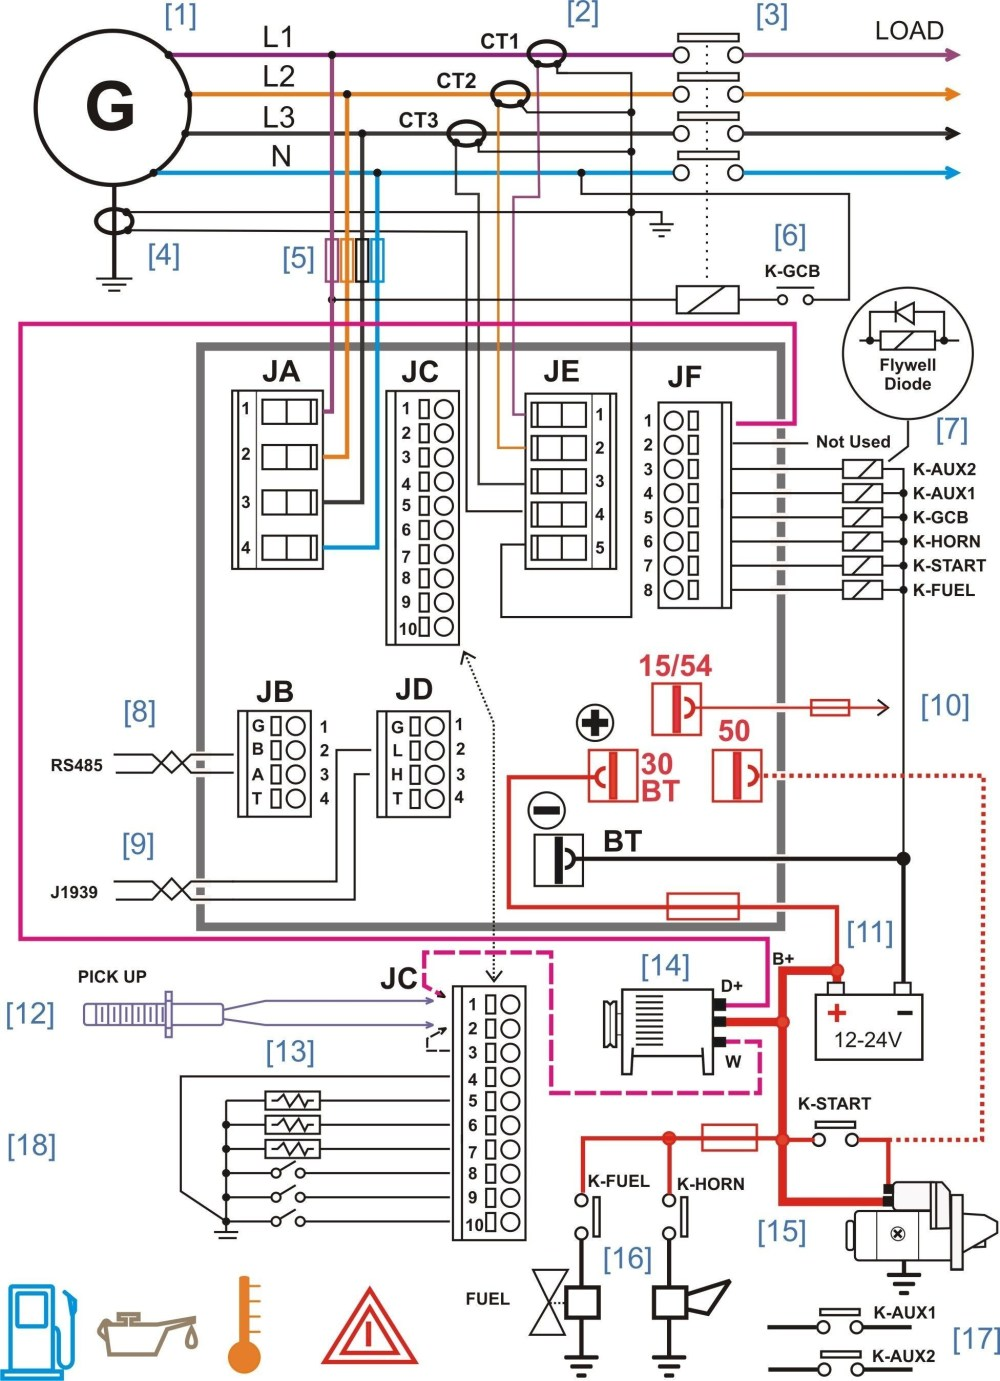 medium resolution of 50 amp transfer switch wiring diagram wiring diagram for 20kw generac generator inspirationa wiring diagram